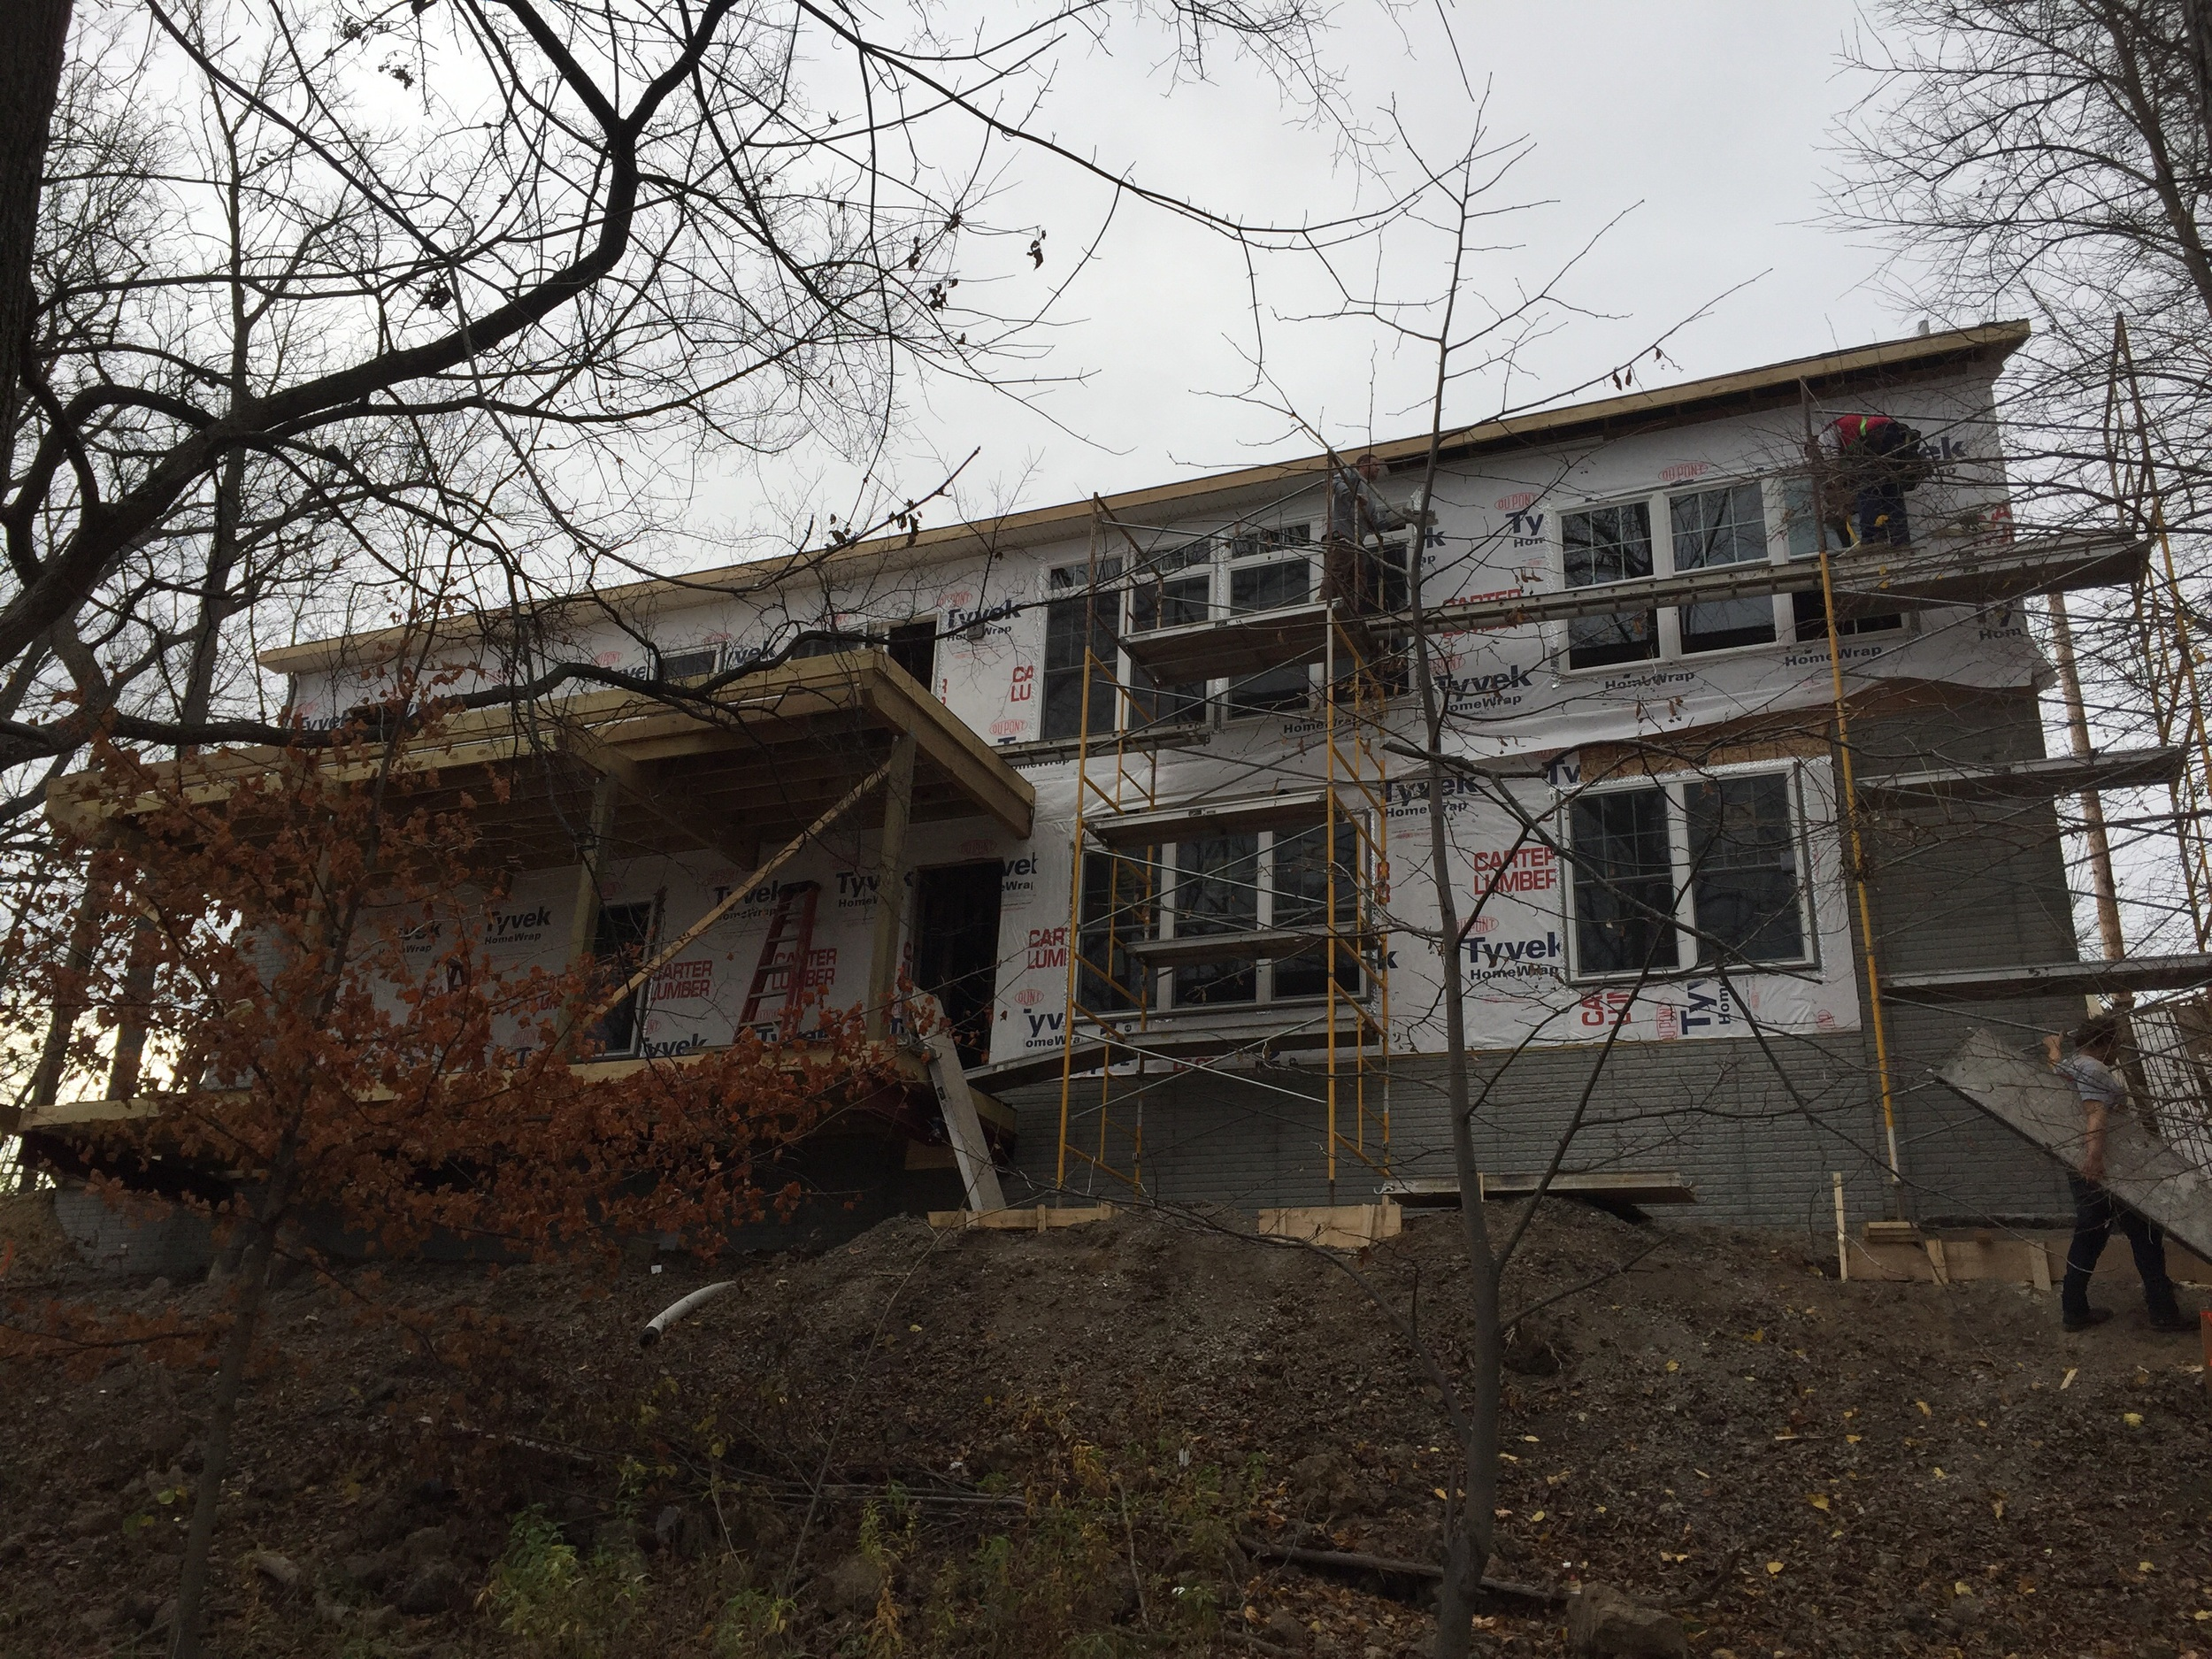 With second story eaves close 25' off the ground and built into a shear cliff, this build was not for the faint of heart.